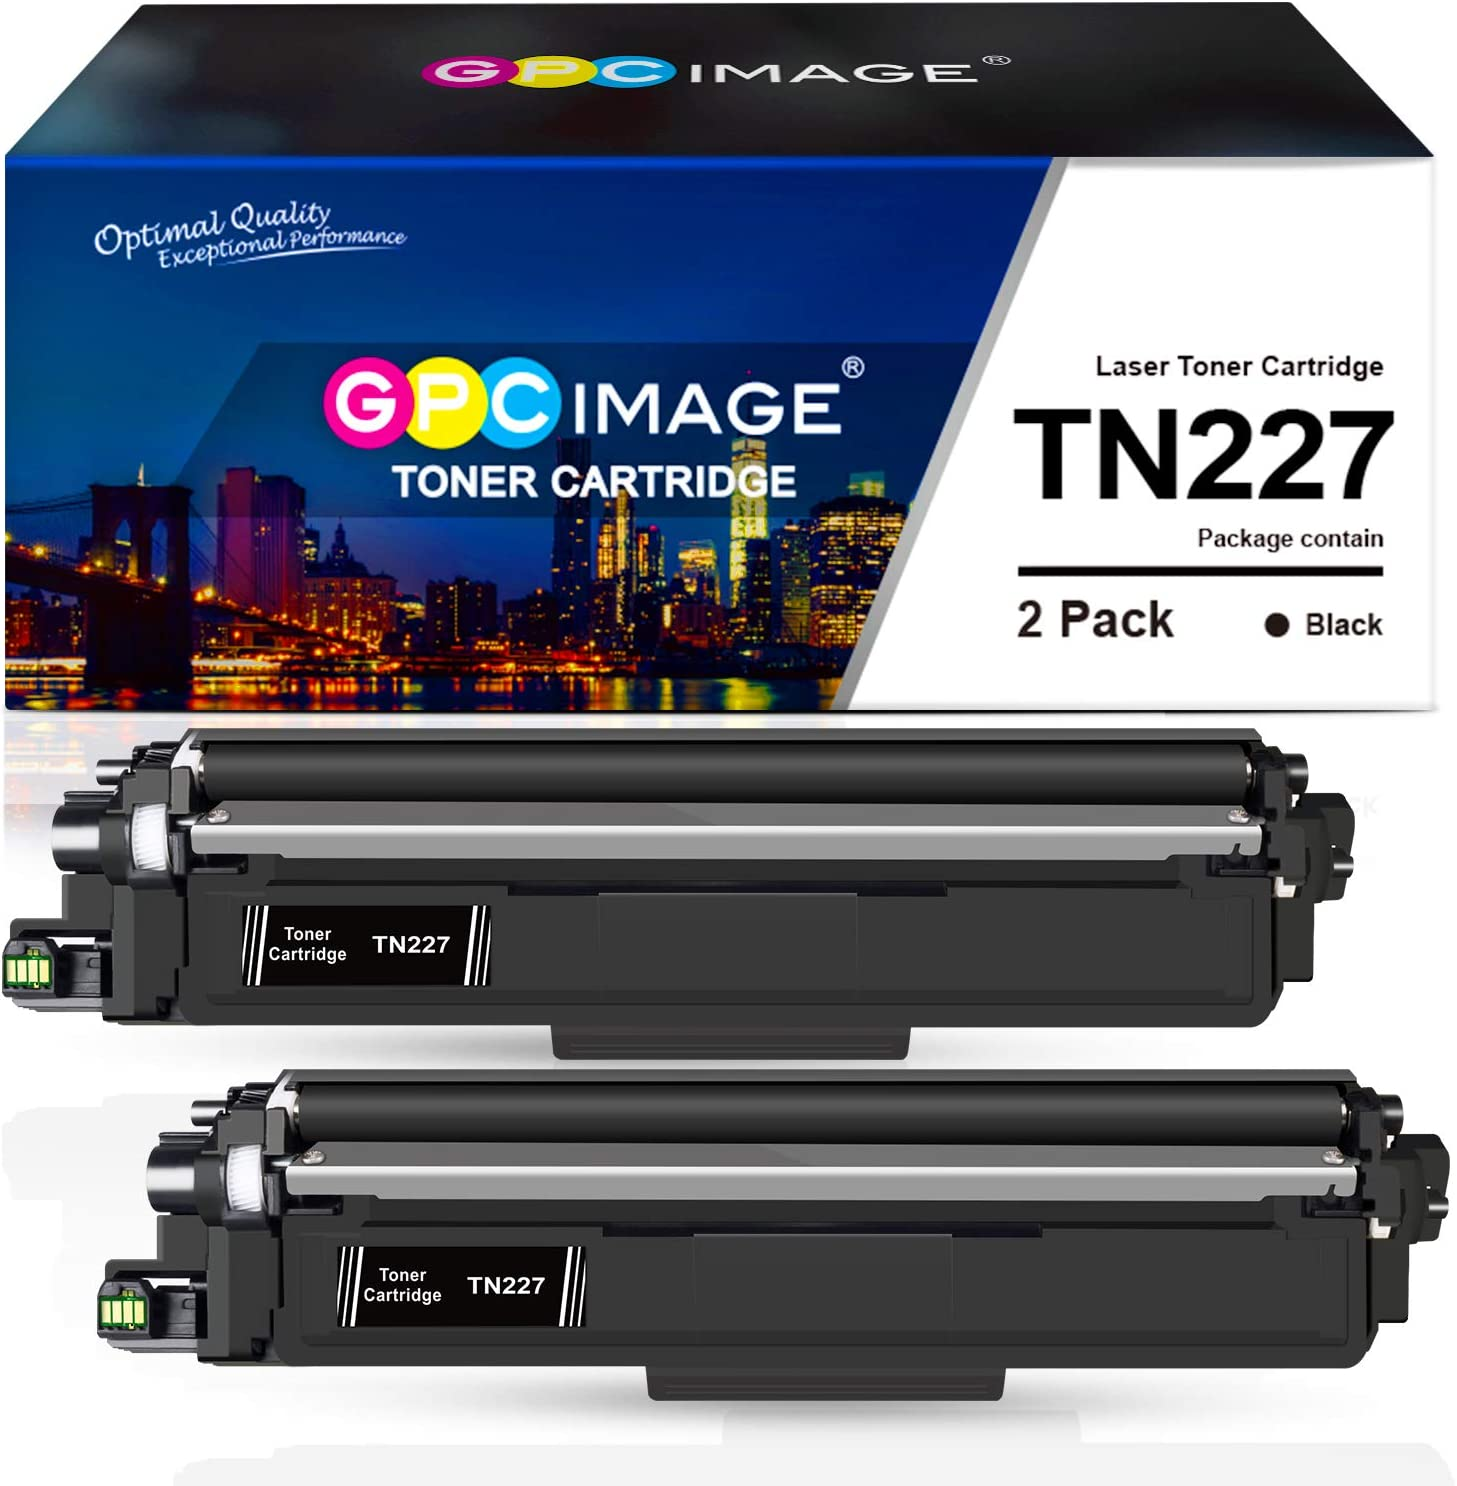 GPC Image Compatible Toner Cartridge Replacement for Brother TN227 TN-227 TN227bk TN223 fit for HL-L3230CDW HL-L3210CW HL-L3270CDW HL-L3290CDW MFC-L3710CW MFC-L3750CDW MFC-L3770CDW Printer (2 Black)